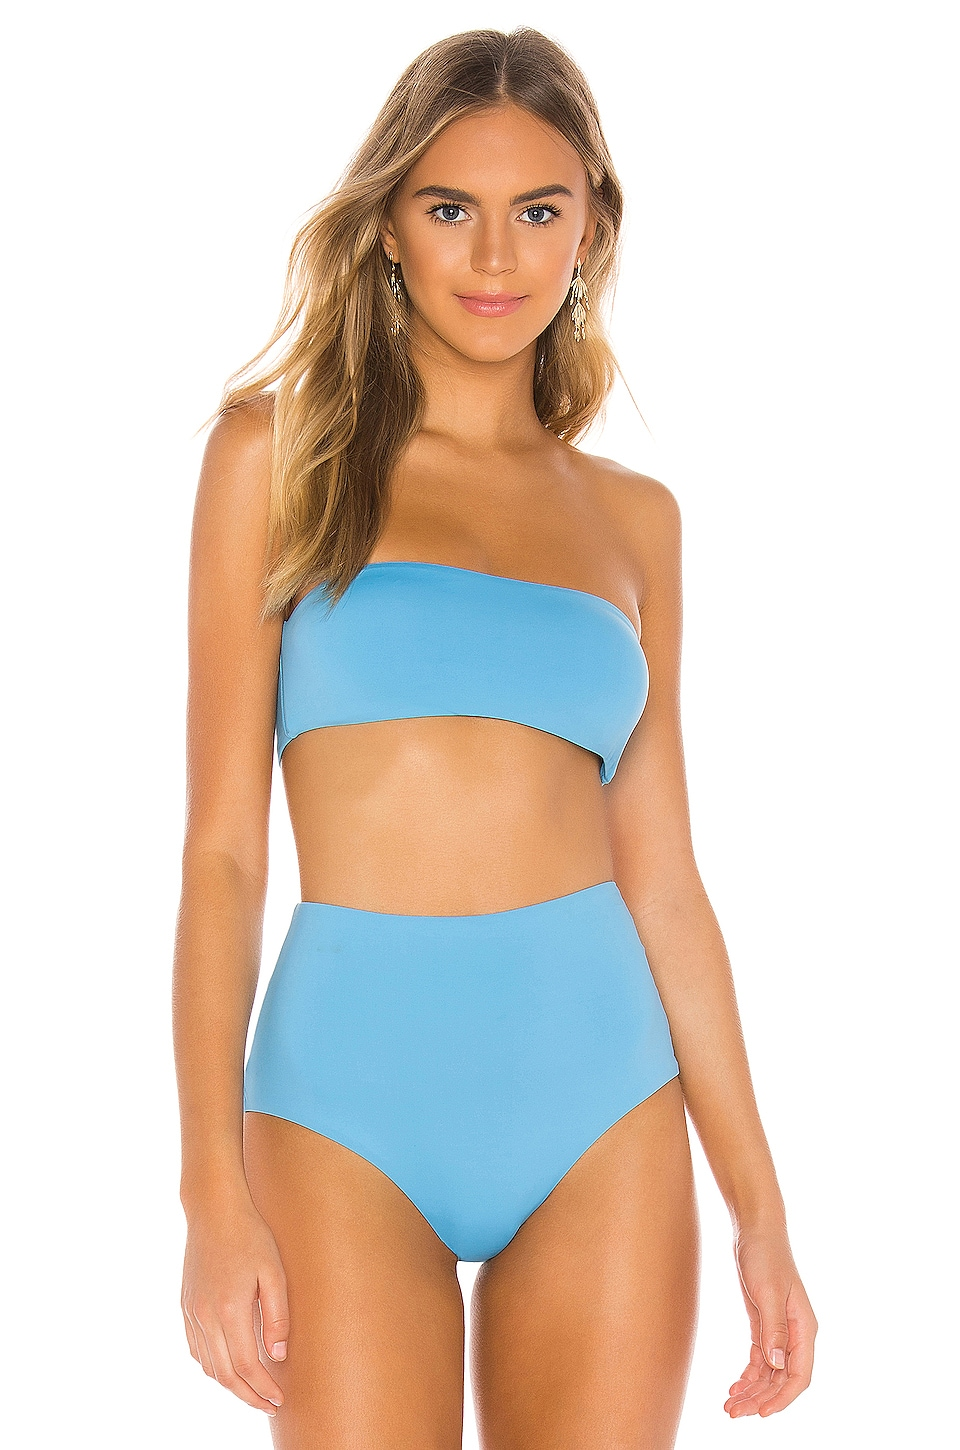 eberjey So Solid Summer Bandeau in Ethereal Blue